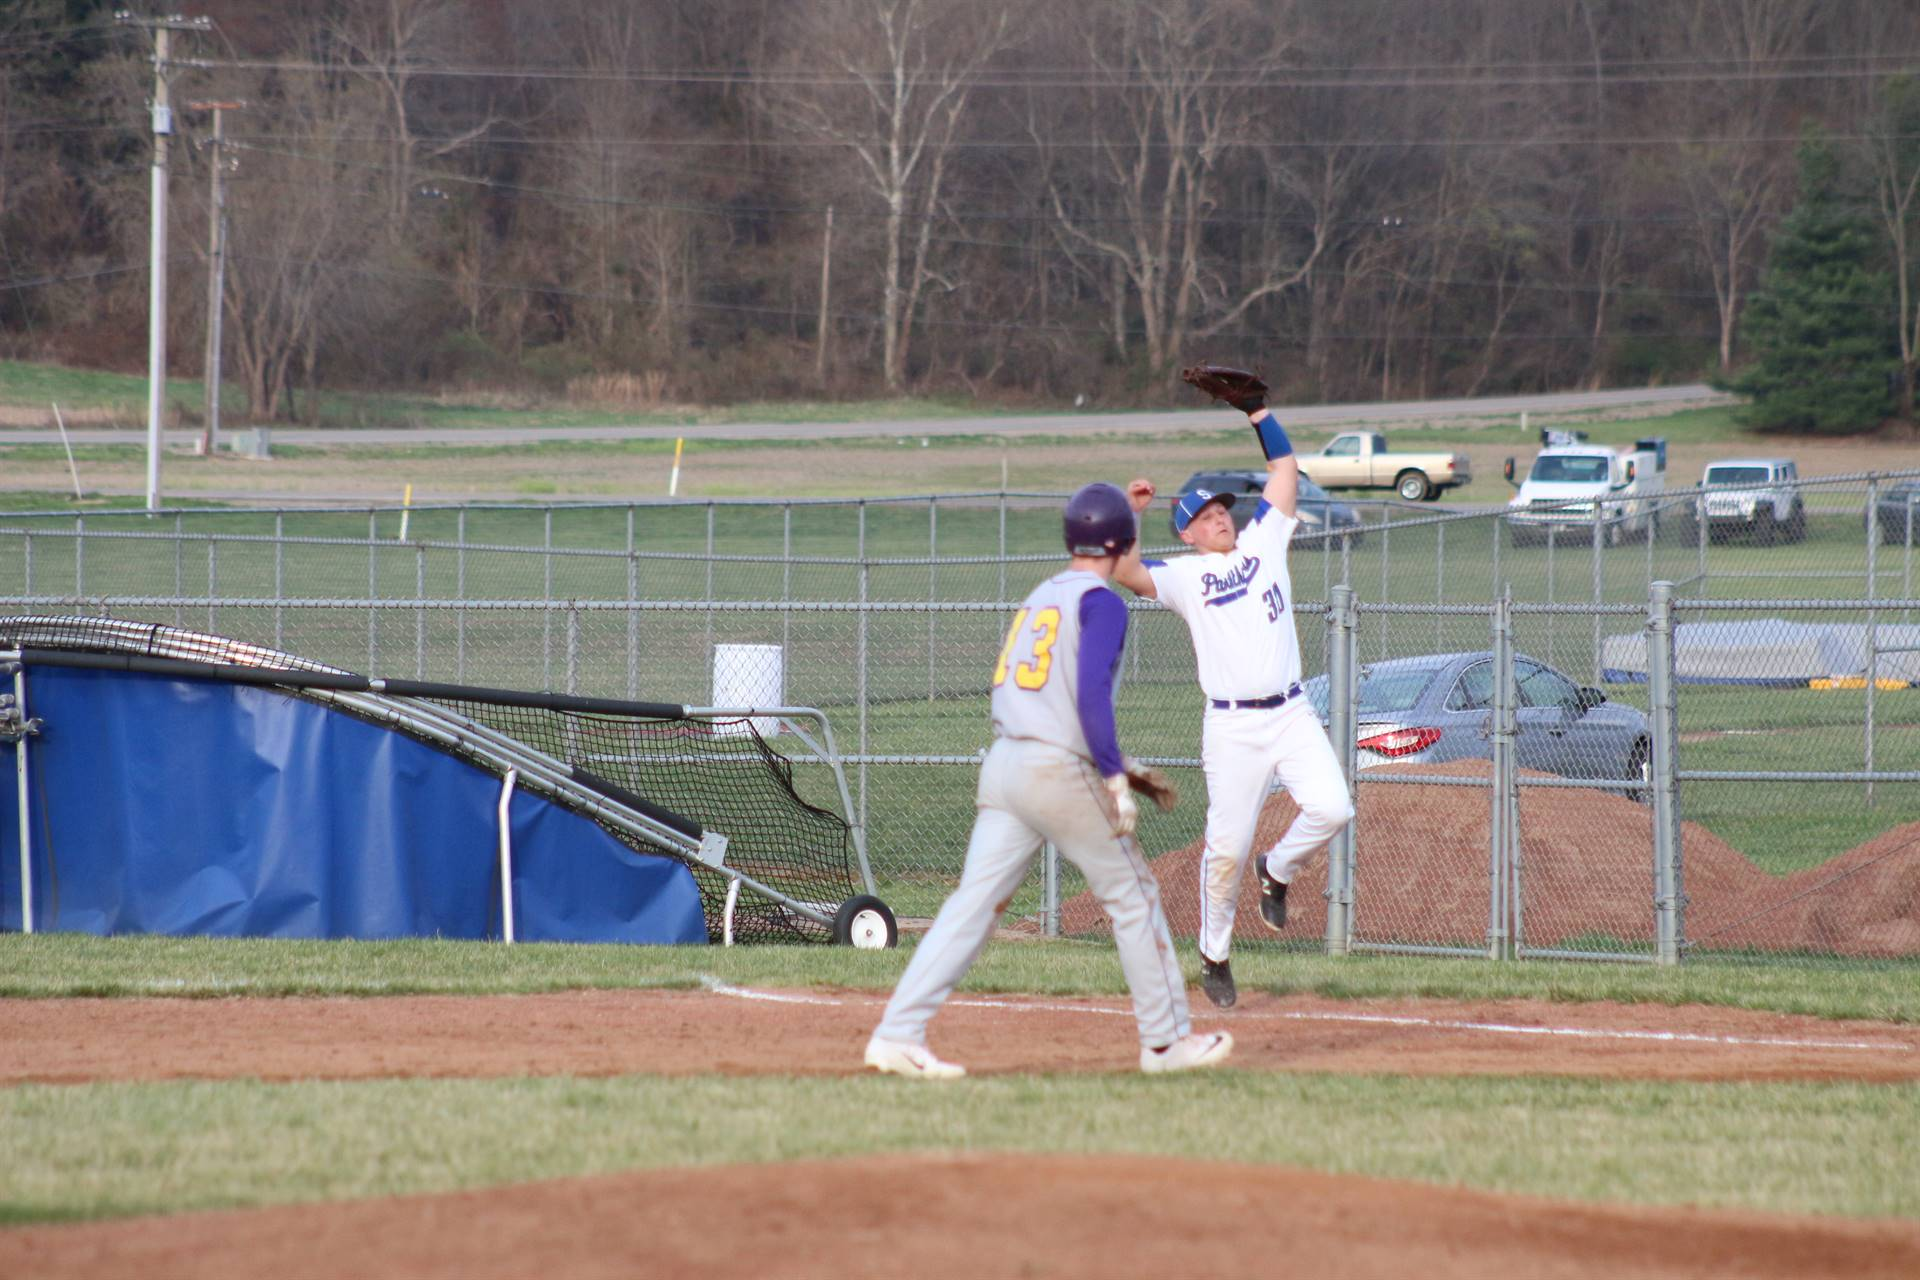 SE Baseball vs Unioto